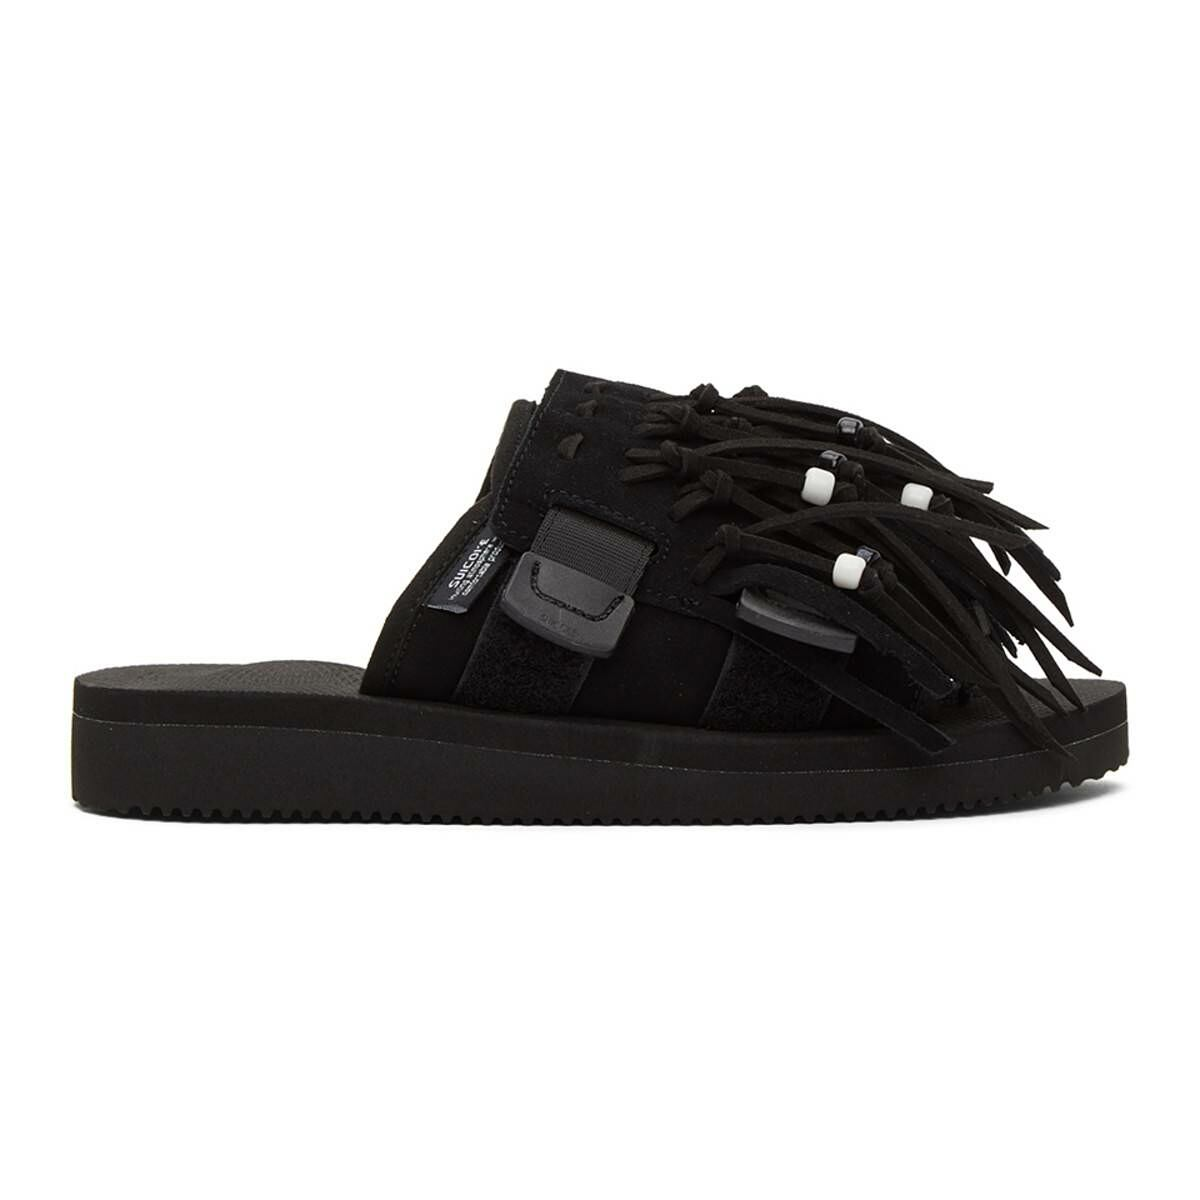 Suicoke Black HOTO Scab Sandals Ssense USA MEN Men SHOES Mens SANDALS